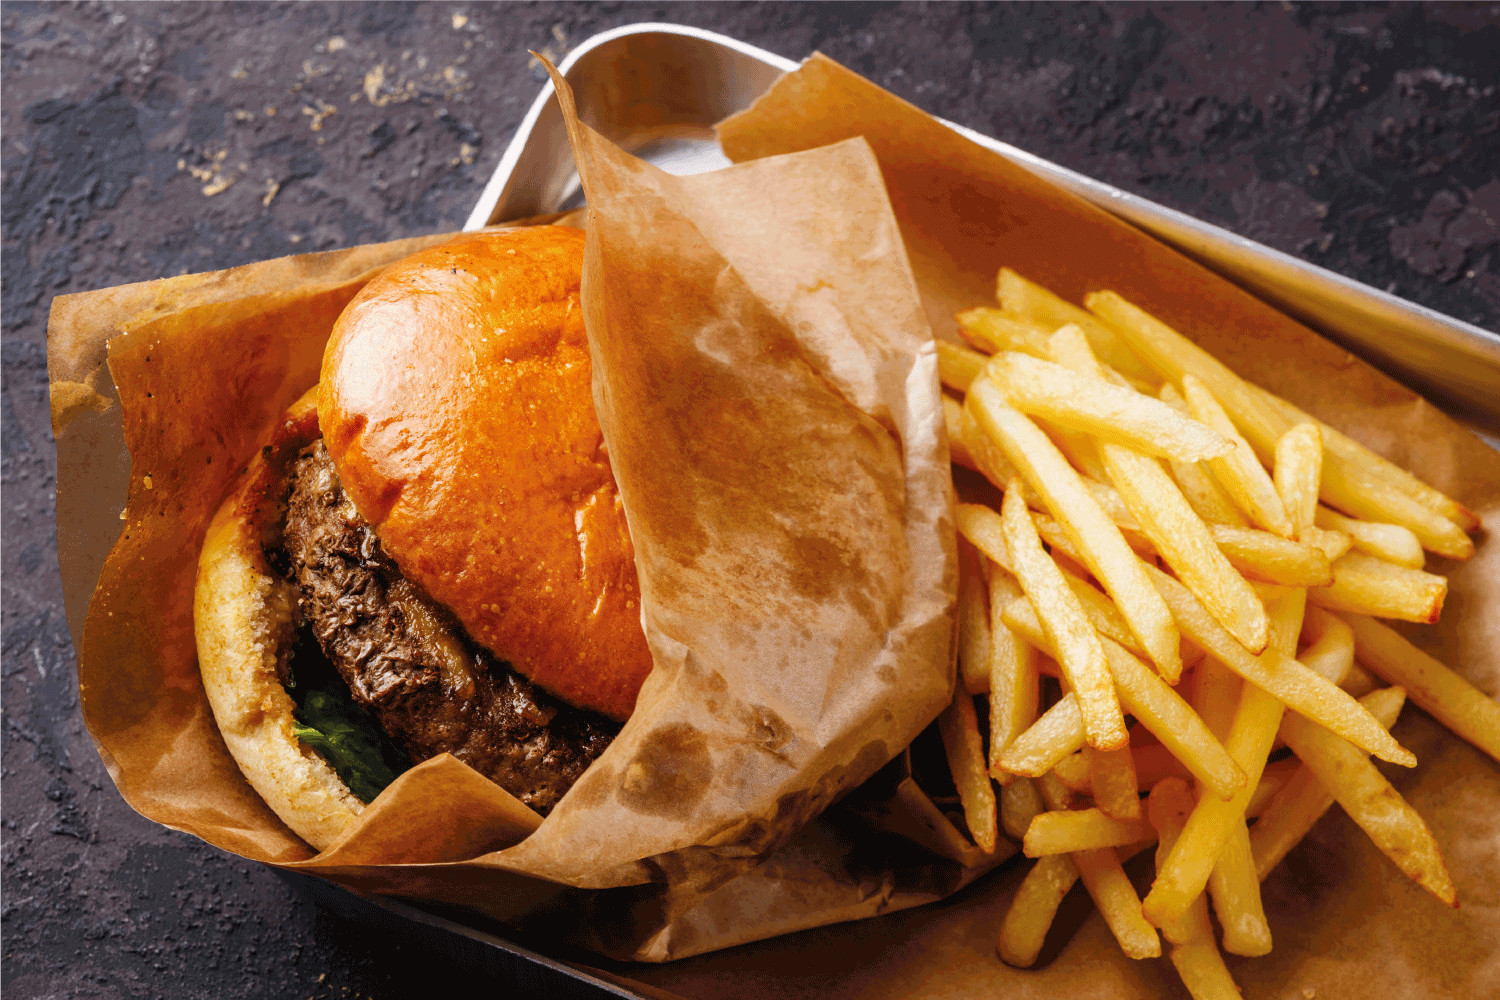 Burger with meat and French fries in aluminum tray on dark background